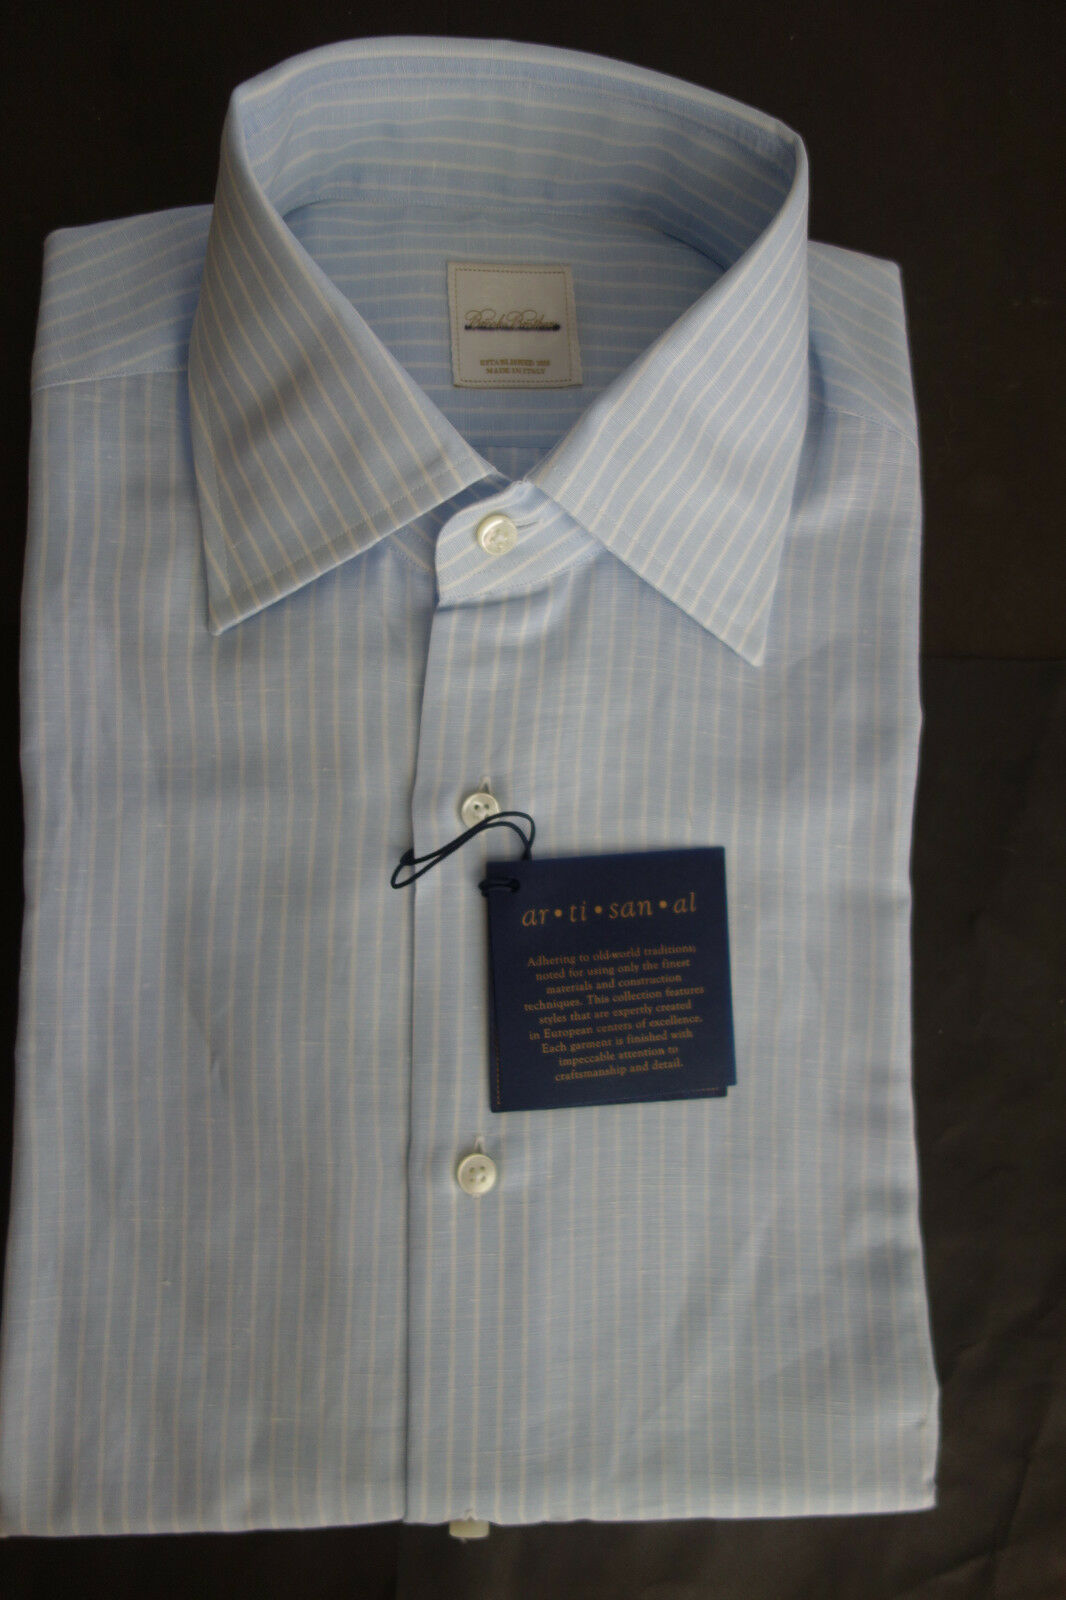 NWT Brooks Bredhers bluee w White Stripe Linen Blend Shirt 15.5-32 33 MSRP